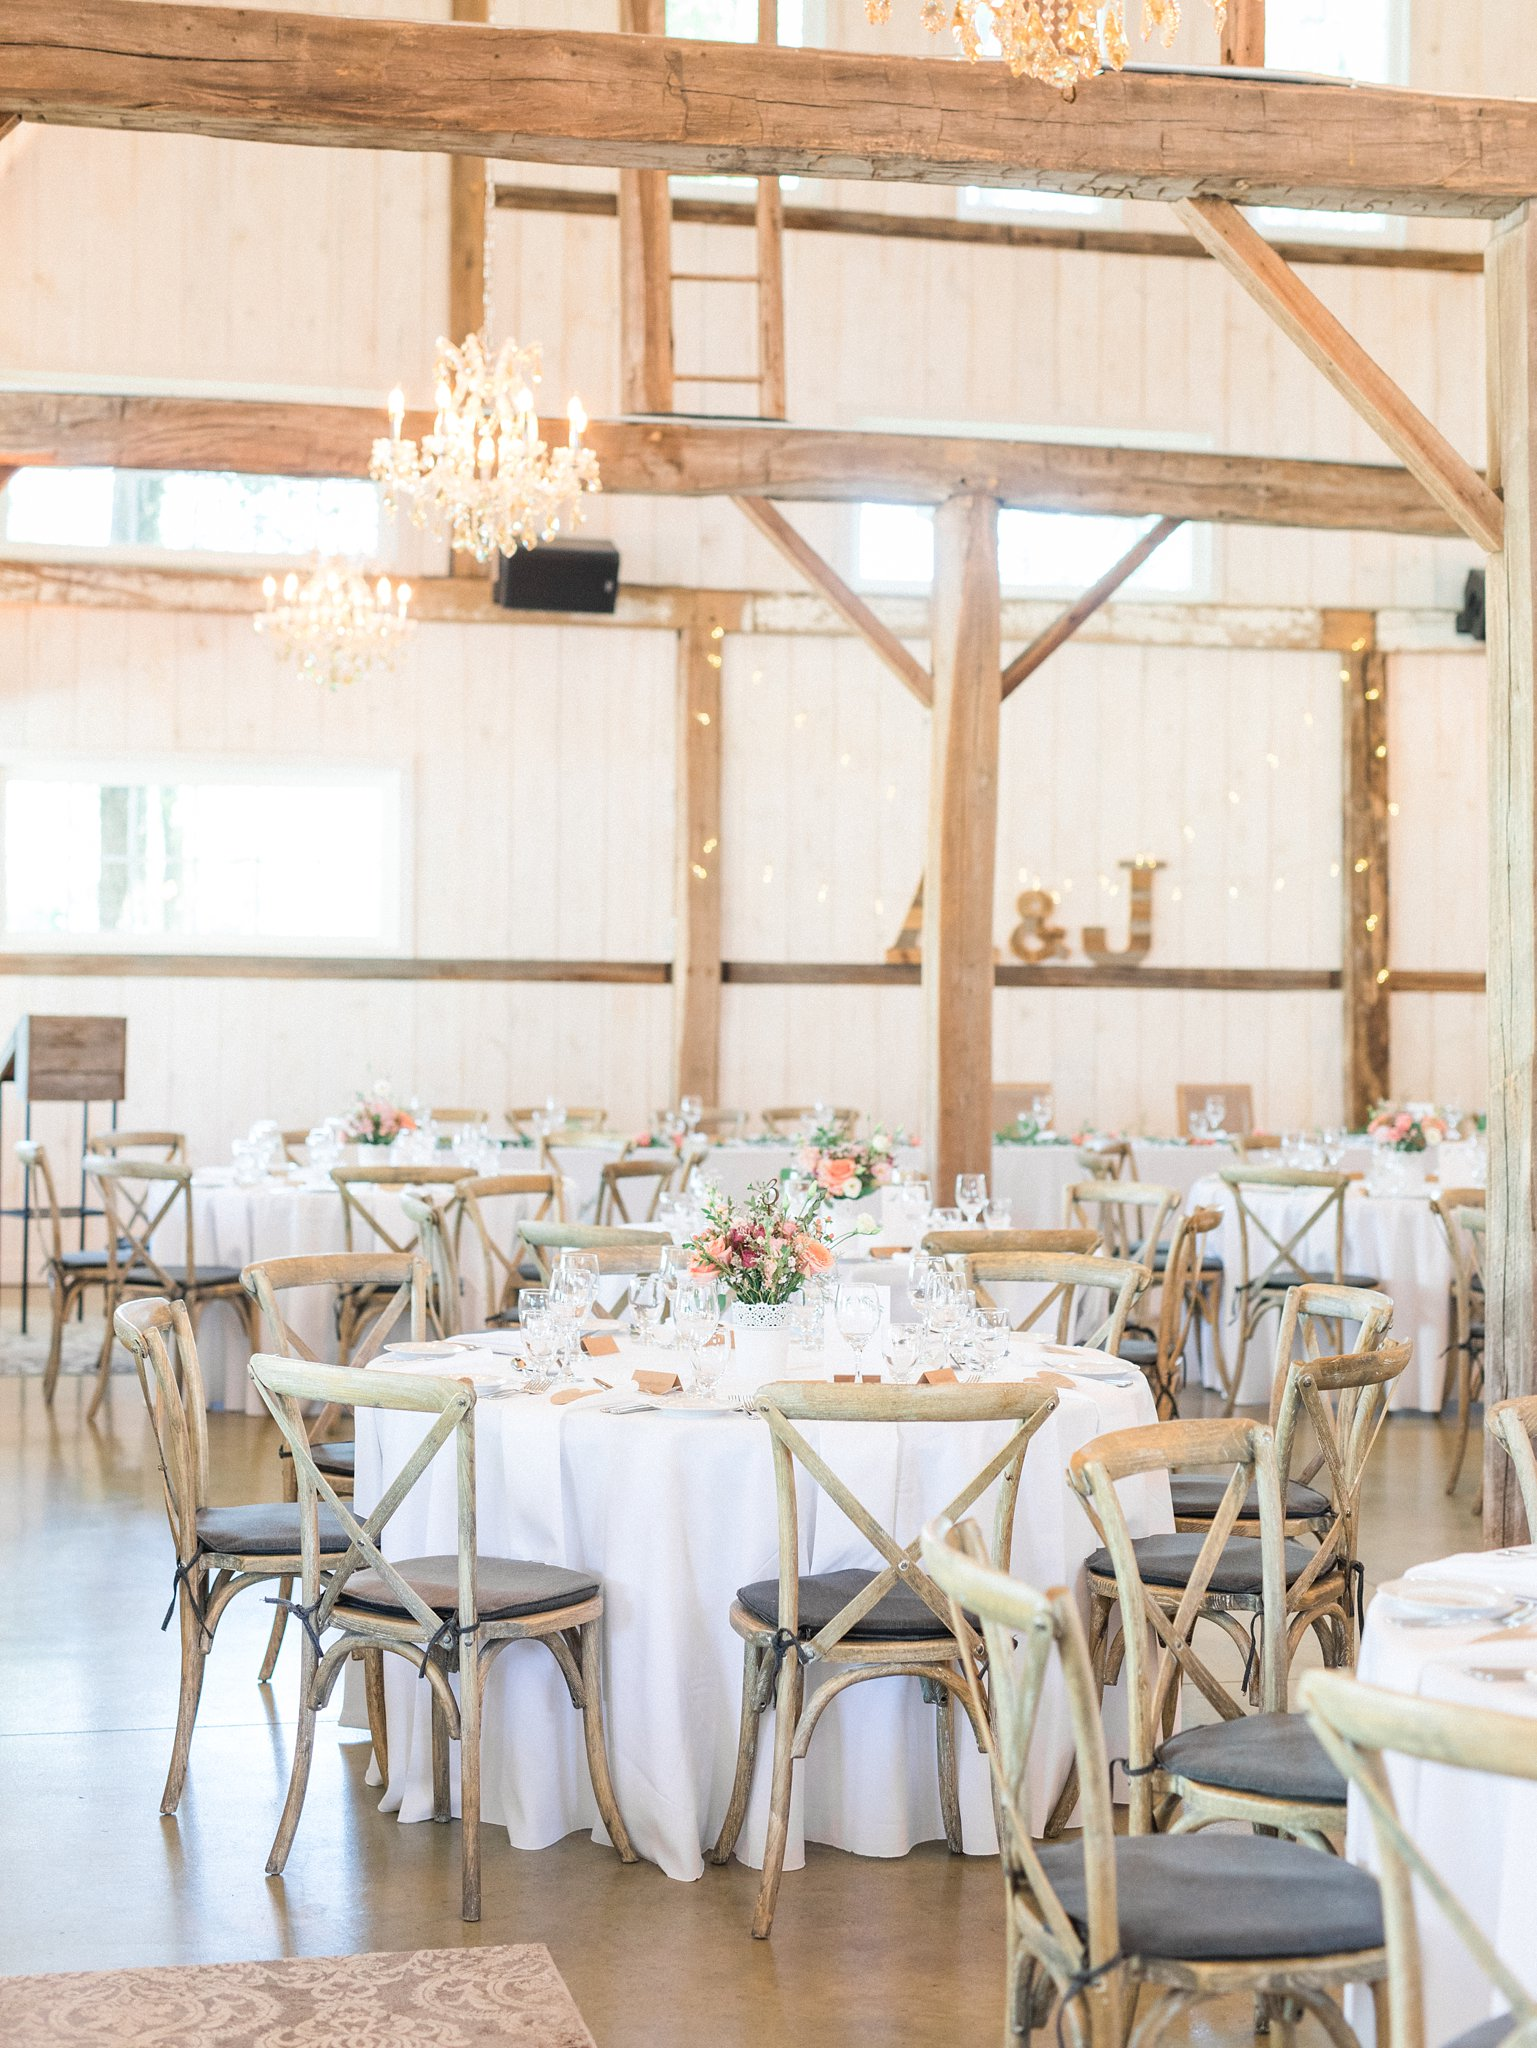 Vineyard chairs Dog-friendly wedding venue Ottawa Stonefields Amy Pinder Photography